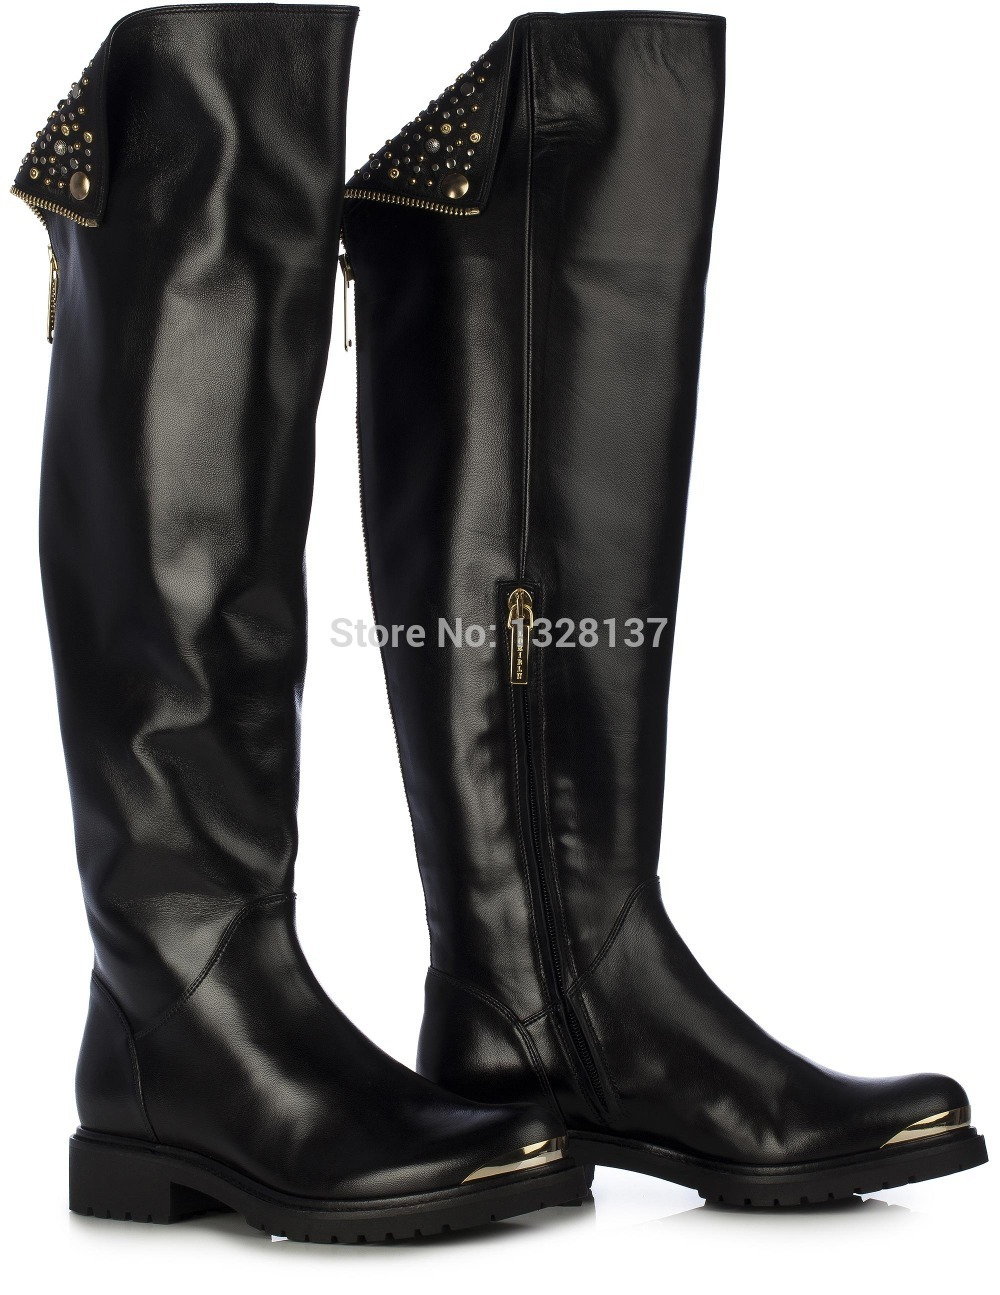 Compare Prices on Flat Black Boots Women Leather- Online Shopping ...